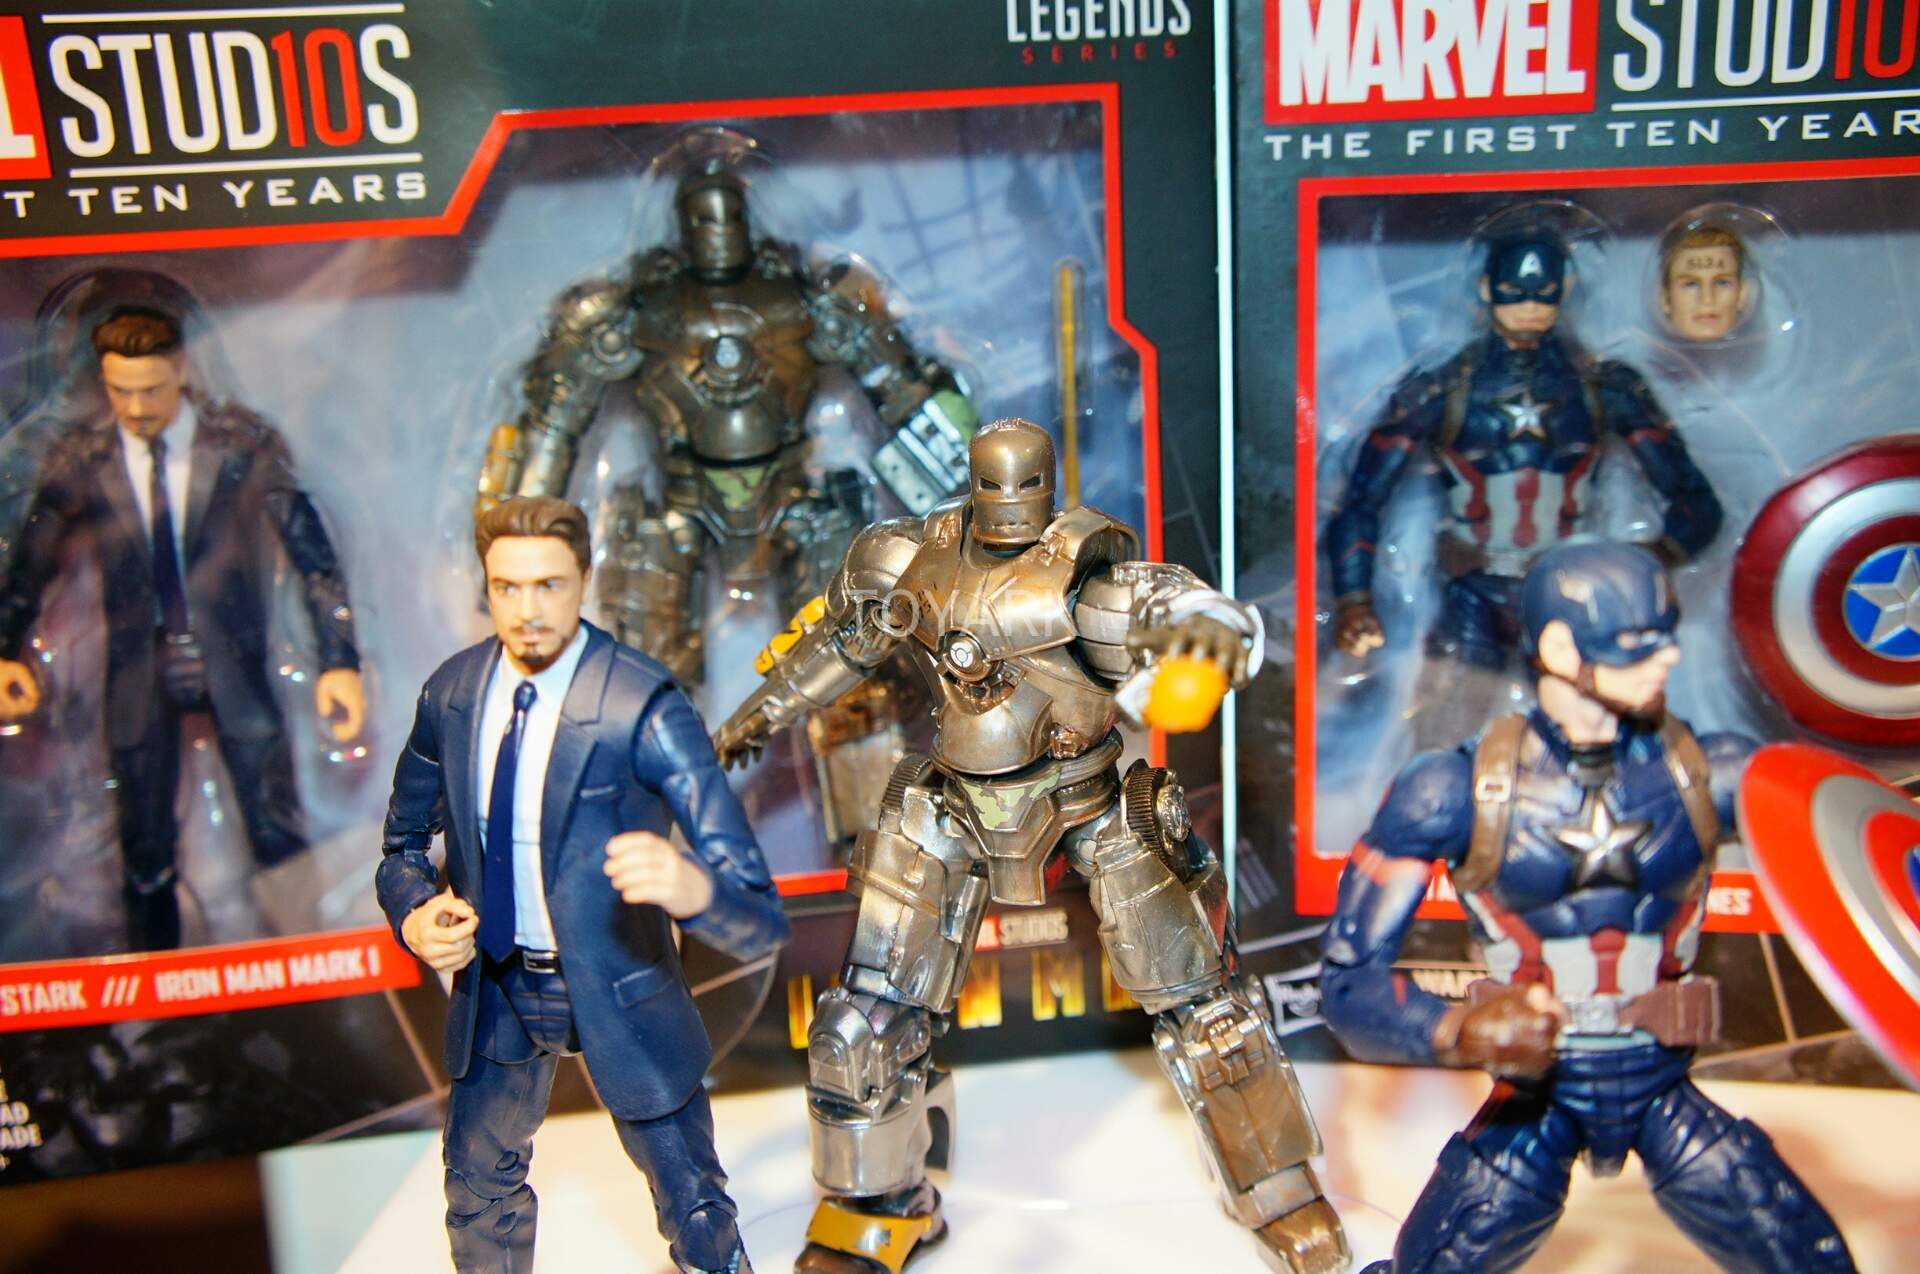 Toy Fair 2018 - Hasbro - Marvel Legends - Marvel Studios - Tony Stark - Mark I